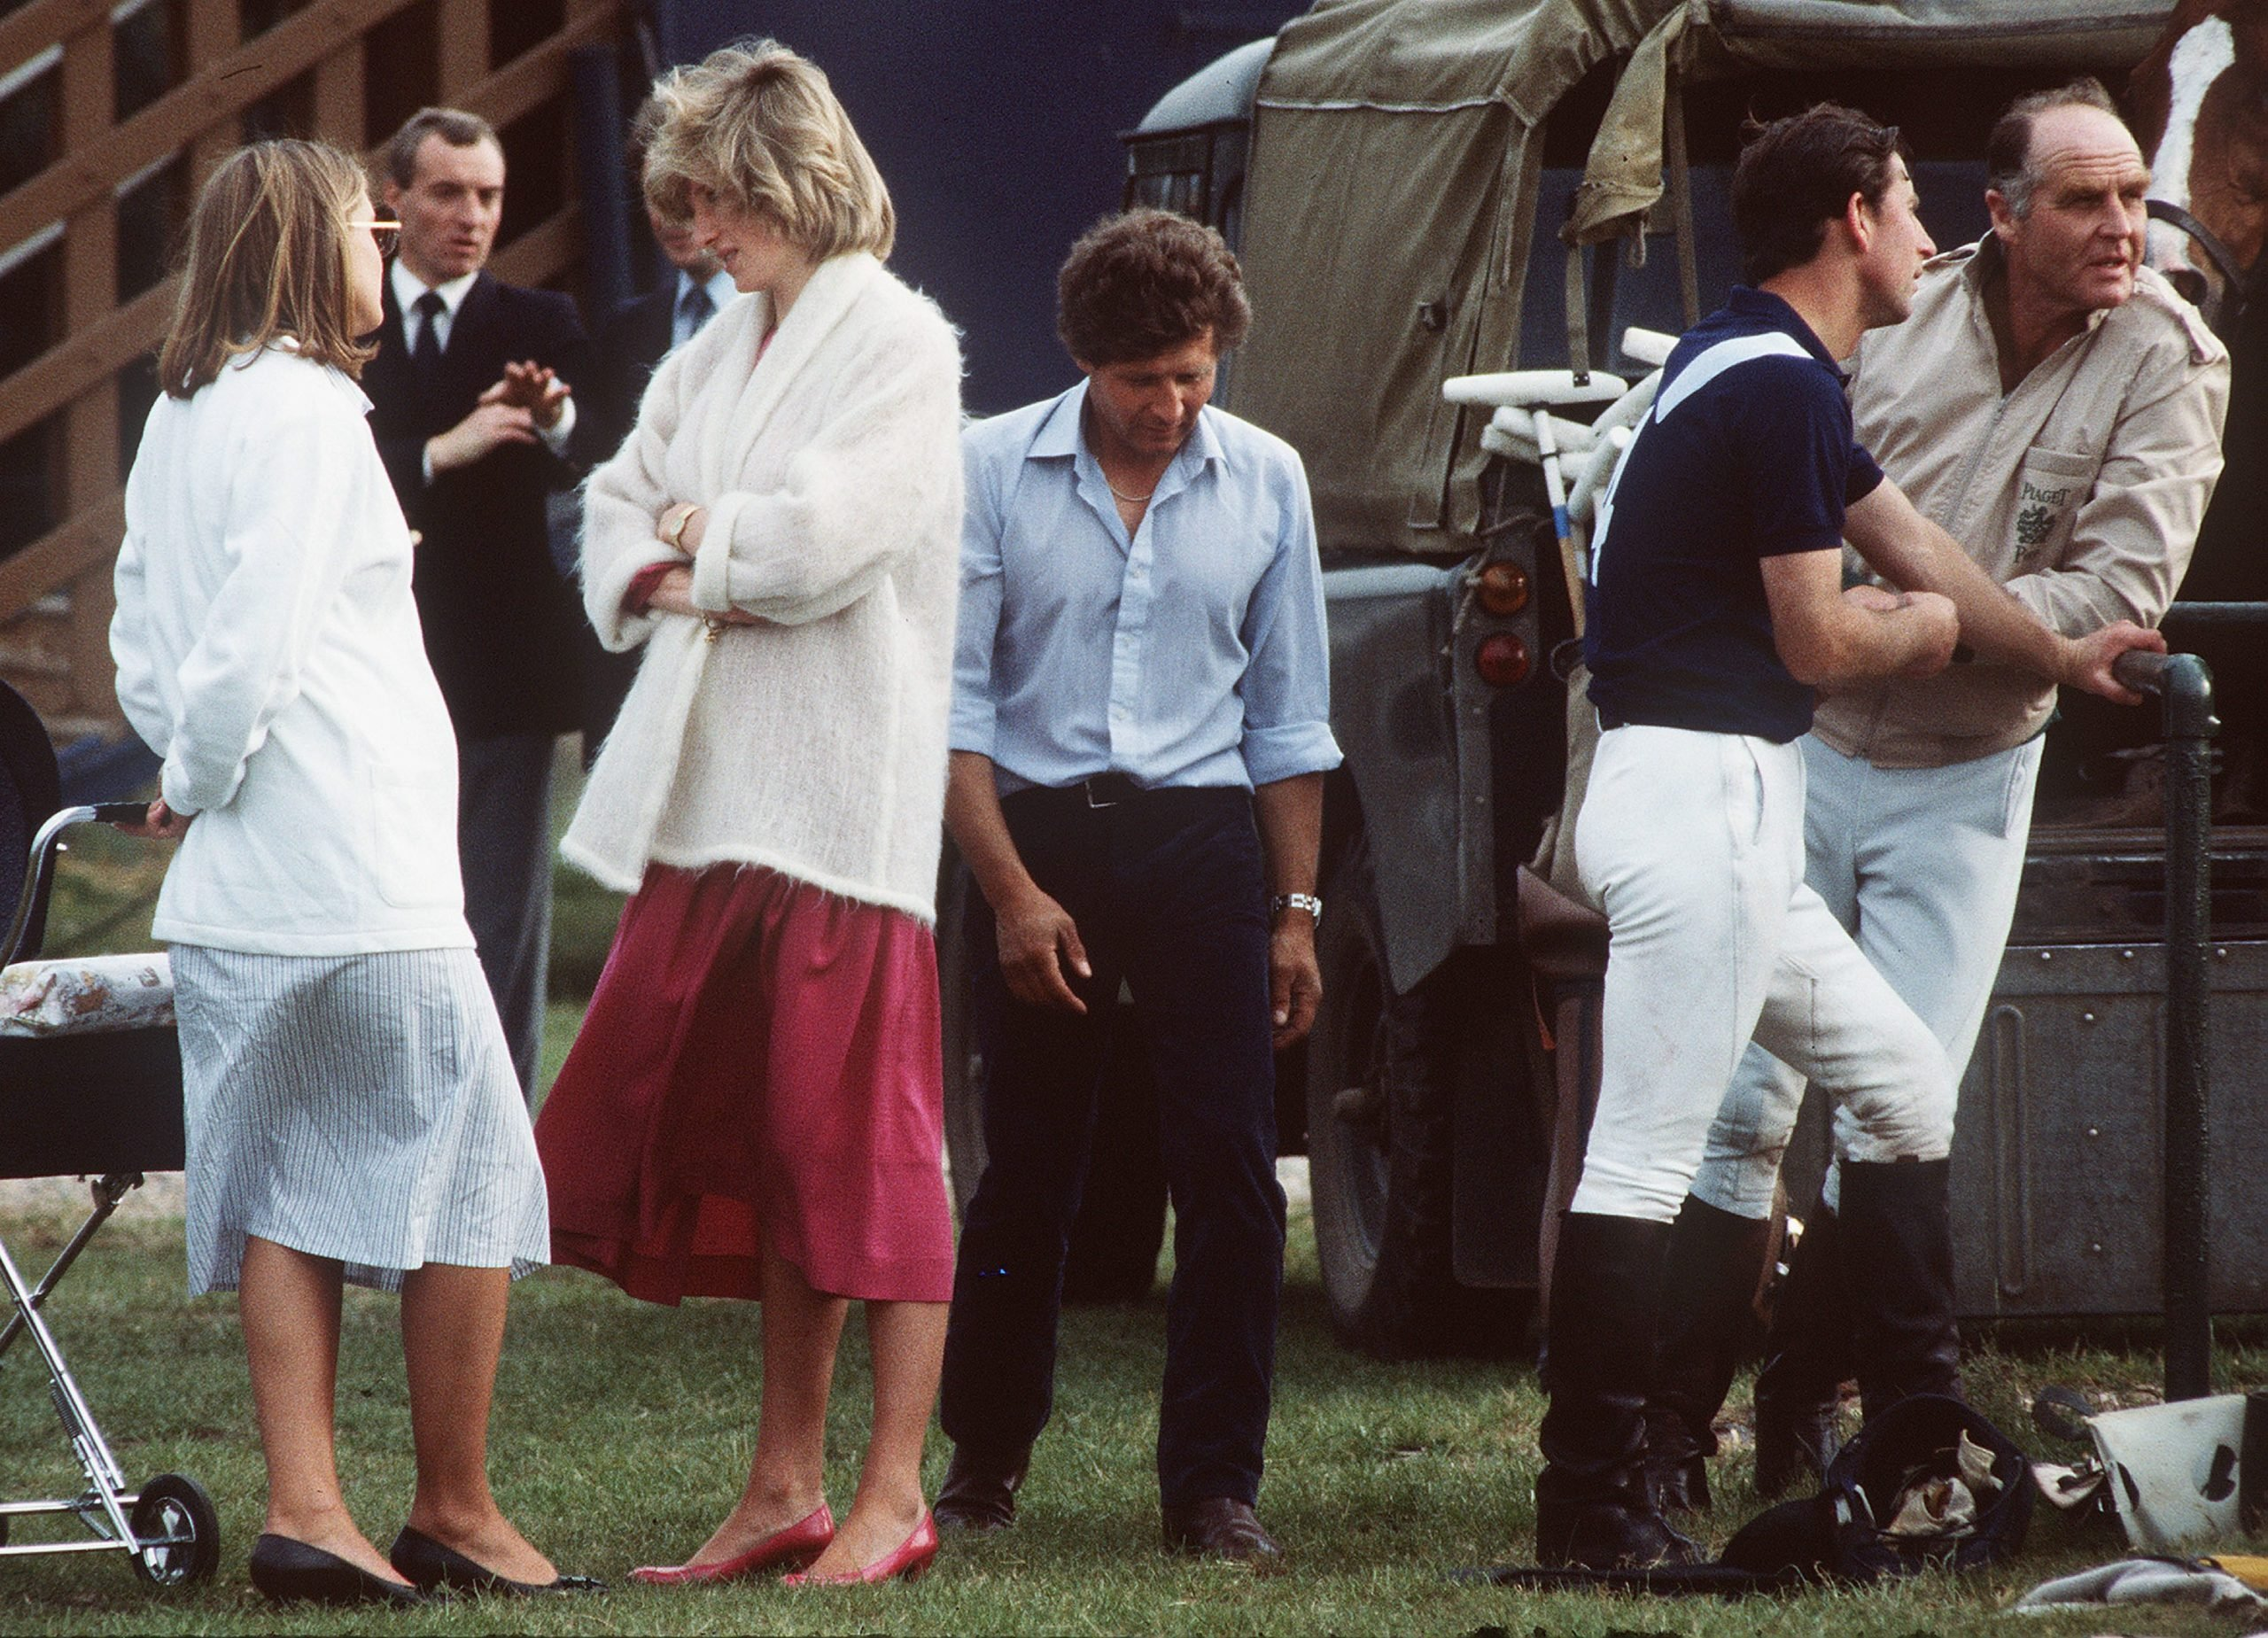 New Video Tapes Aired Of Princess Diana In US